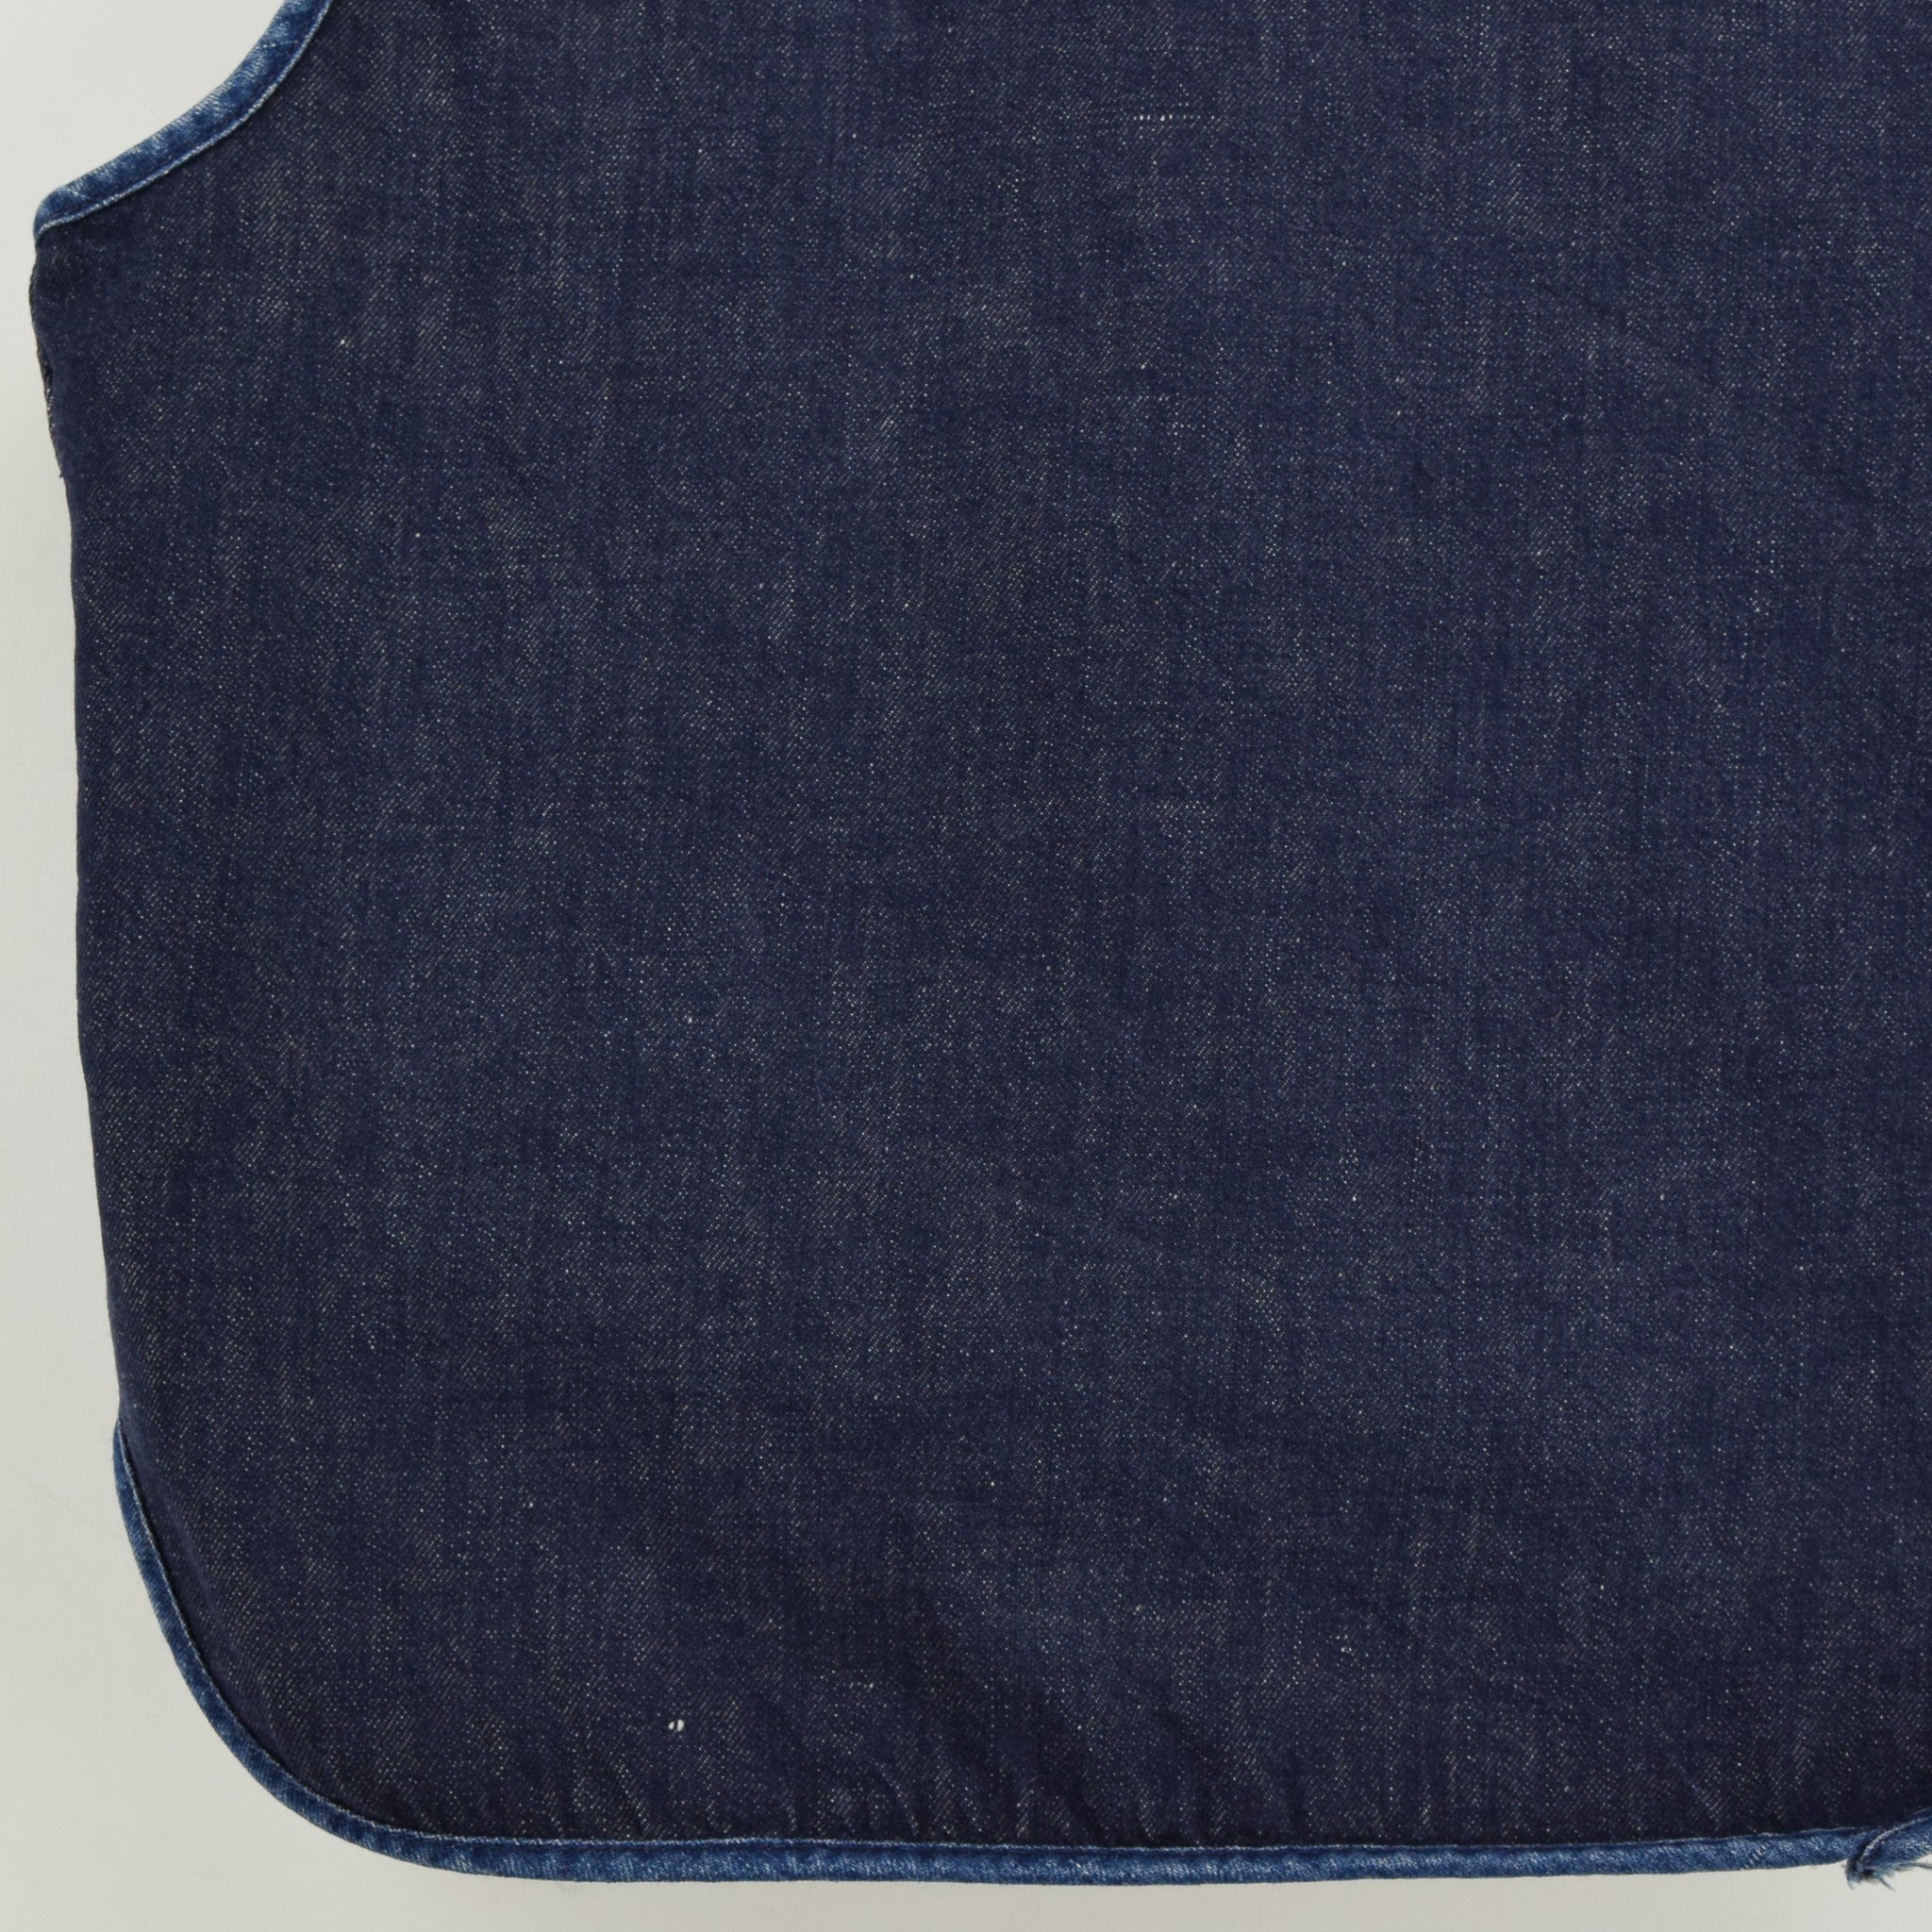 Vintage Sears Roebucks Blue Gilet Cotton Denim Waistcoat Vest Made in USA L back hem